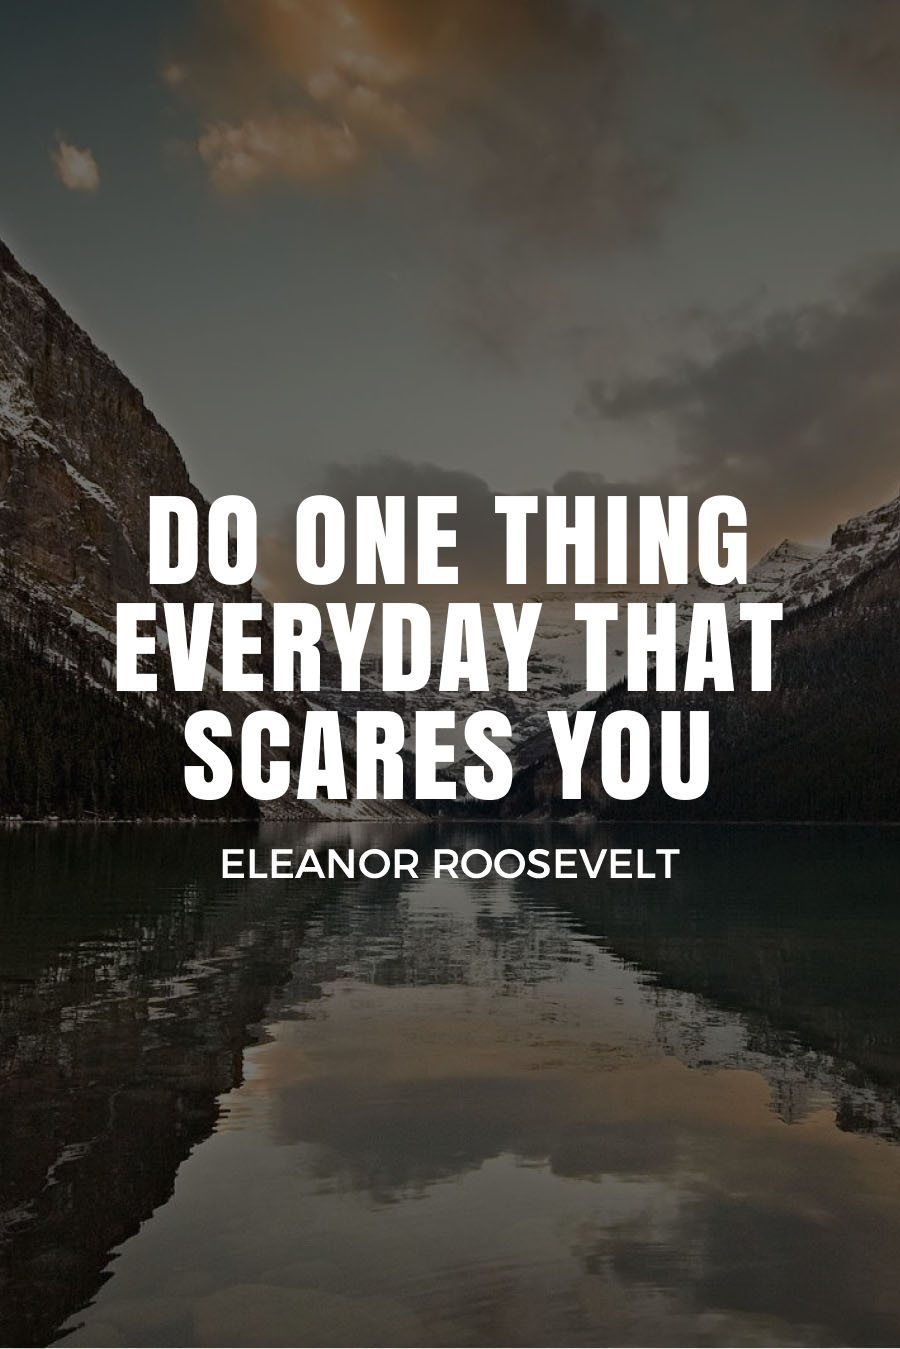 Five Quotes About Travel Fears - DO ONE THING EVERYDAY THAT SCARES YOU - Eleanor Roosevelt